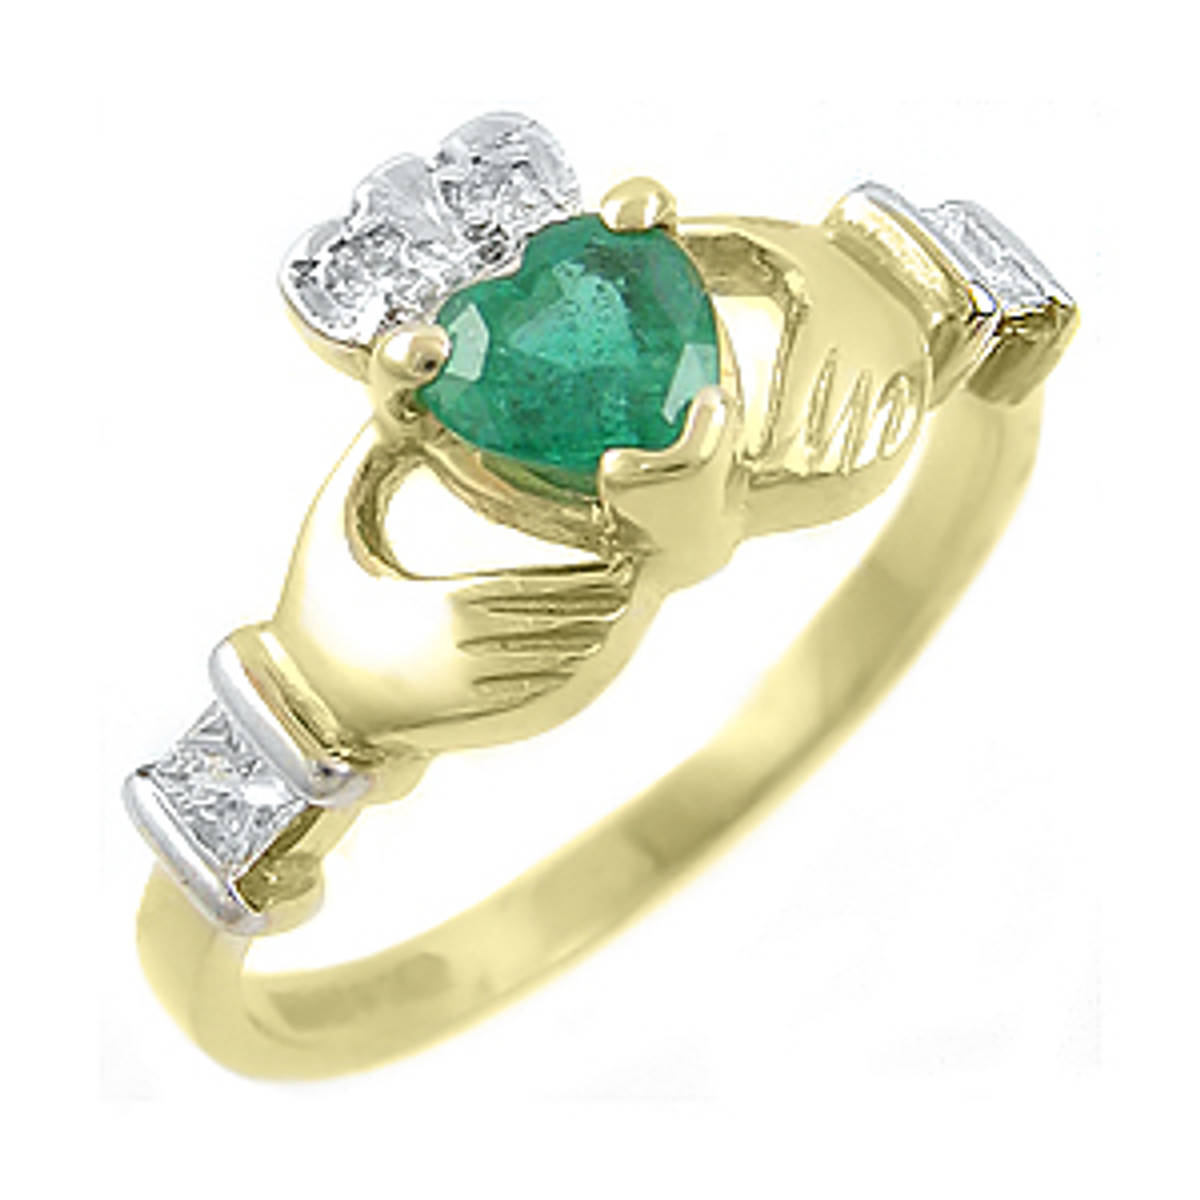 14 carat yellow gold 0.55cts emerald/0.22cts diamonds claddagh engagement ring